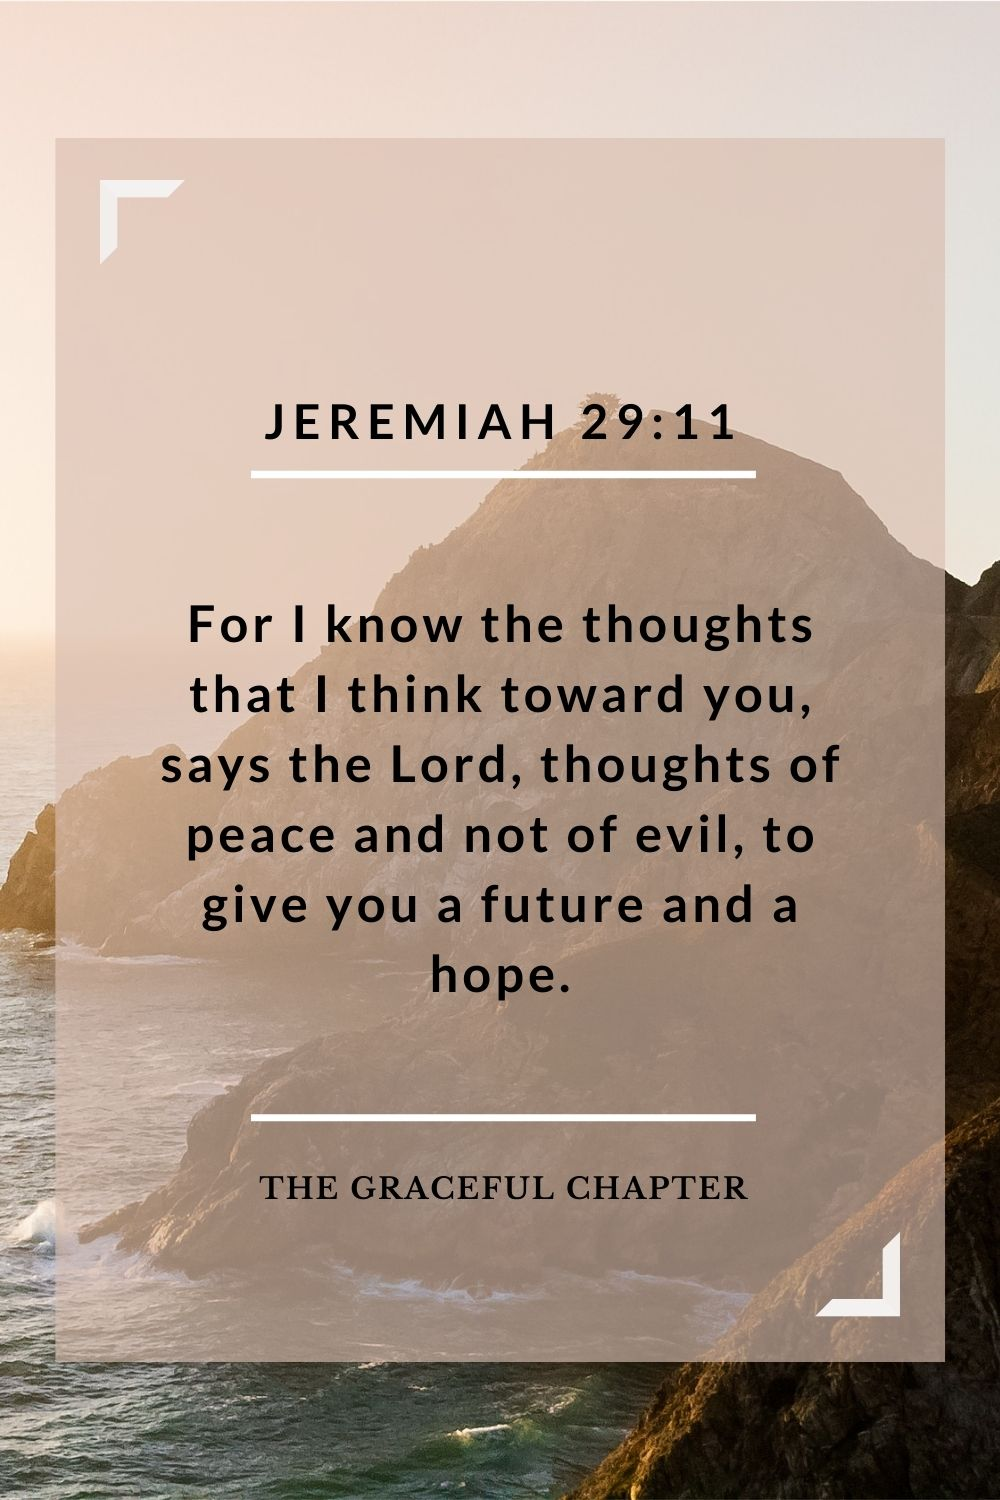 For I know the thoughts that I think toward you, says the Lord, thoughts of peace and not of evil, to give you a future and a hope.For I know the thoughts that I think toward you, says the Lord, thoughts of peace and not of evil, to give you a future and a hope. Jeremiah 29:11